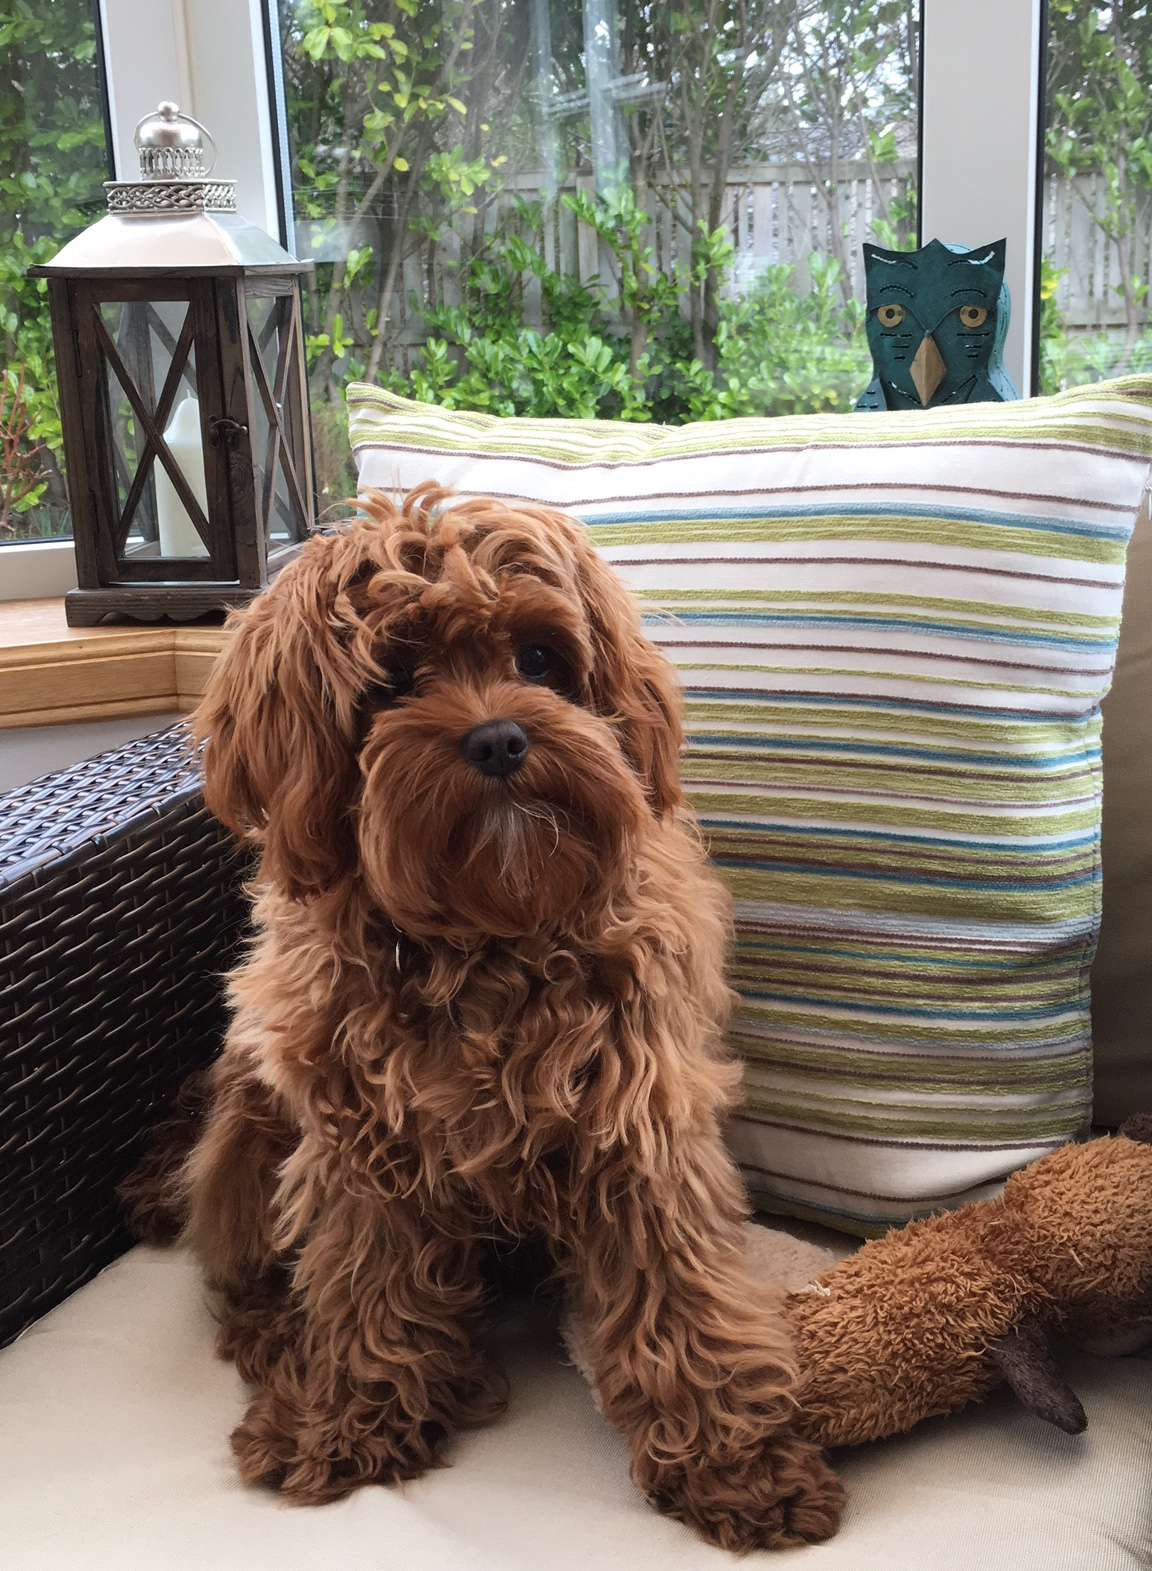 Flossie, Fox Red Cavapoo owned by the Bertram's - Glendream